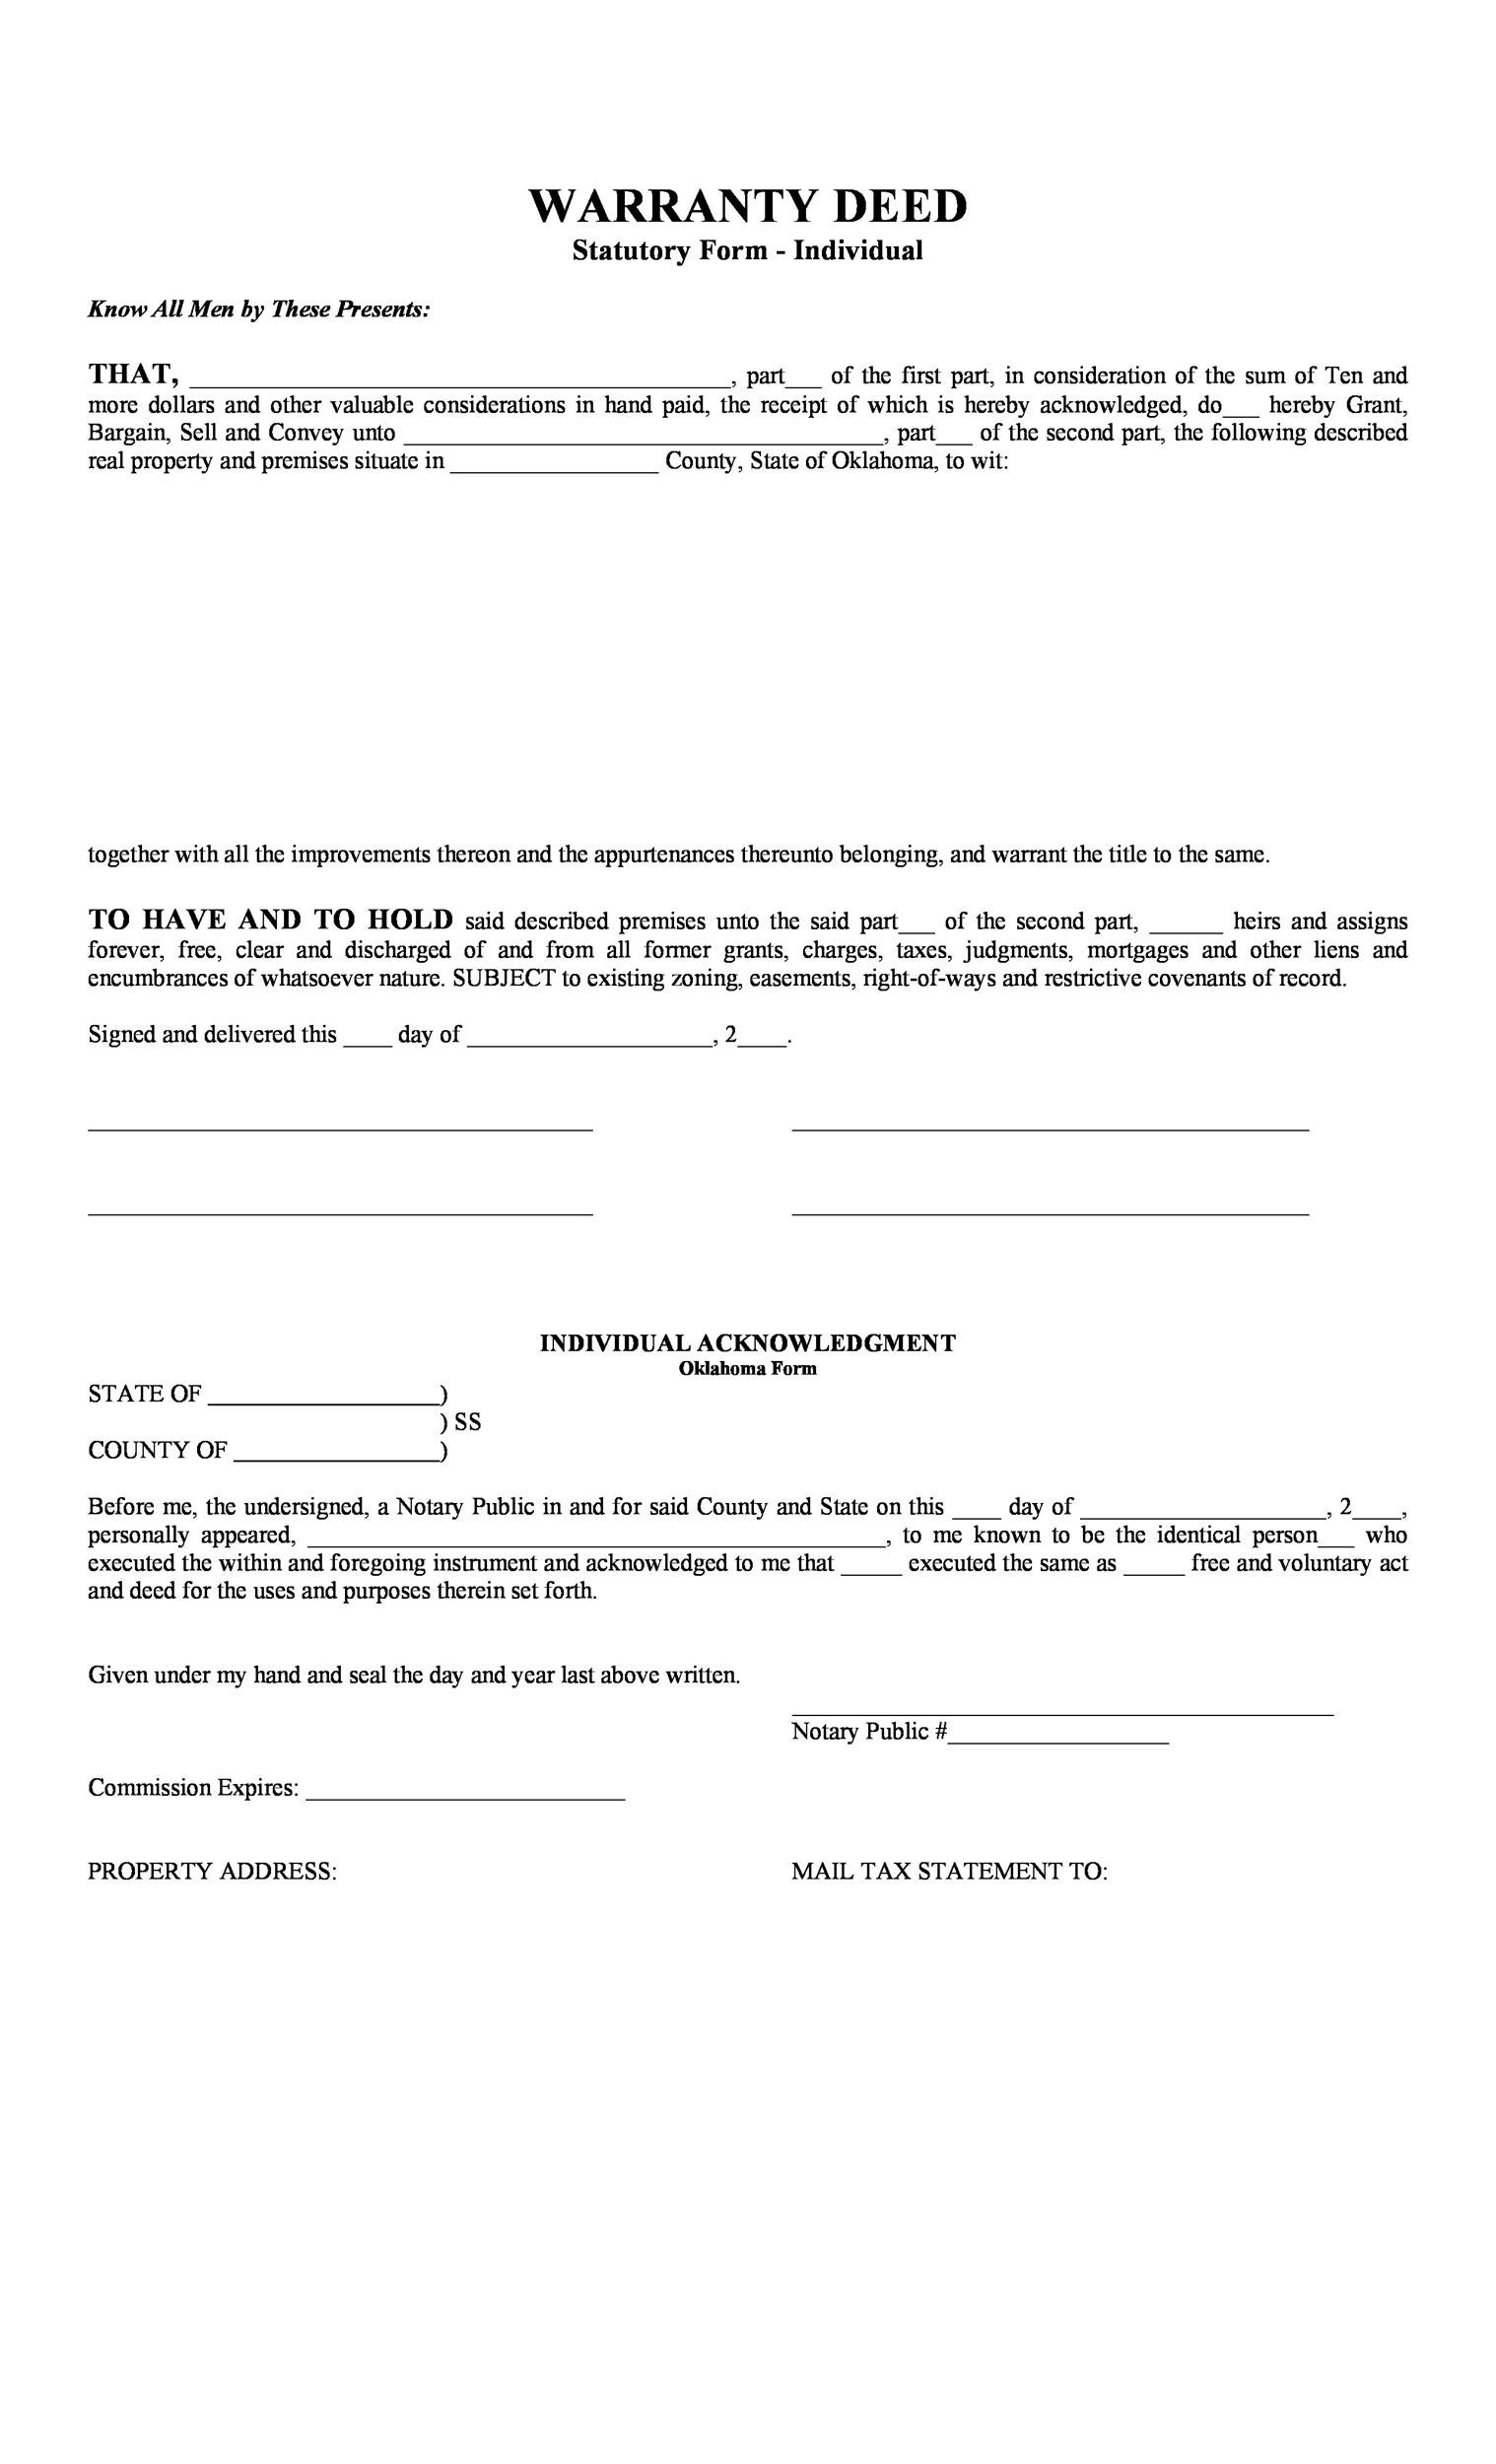 Free Warranty deed template 13